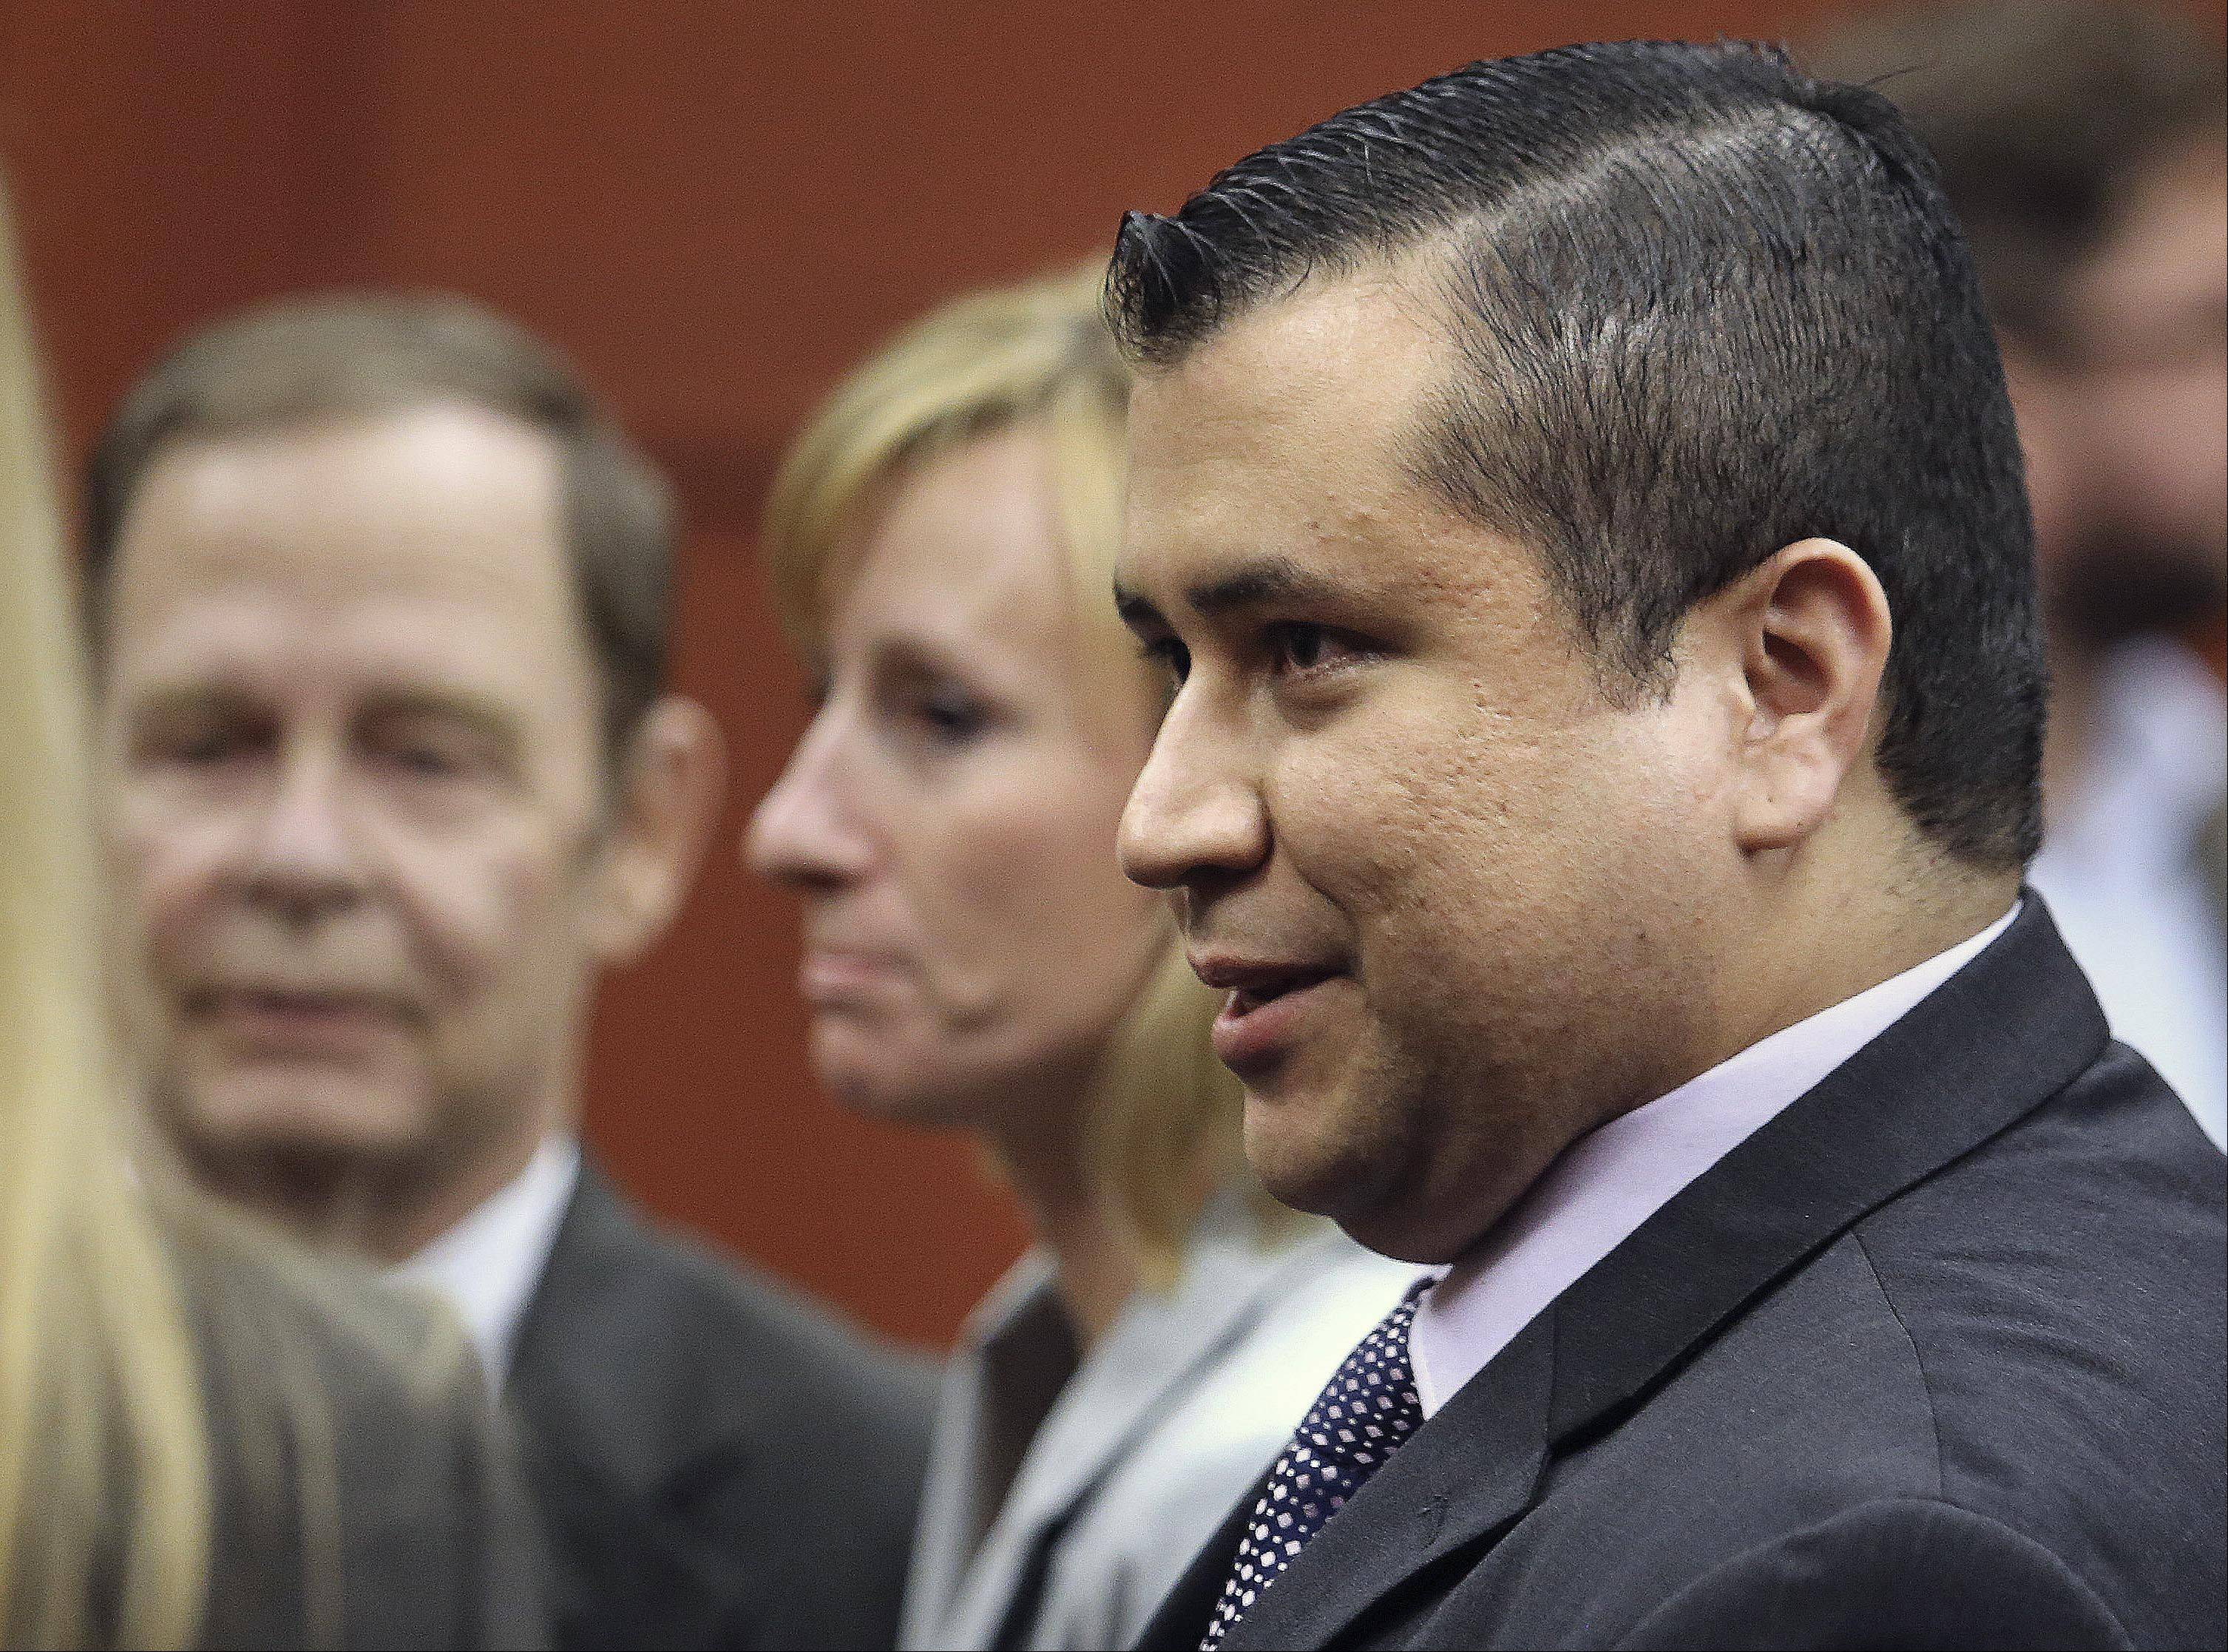 George Zimmerman leaves court with his family after the verdict was announced July 13.